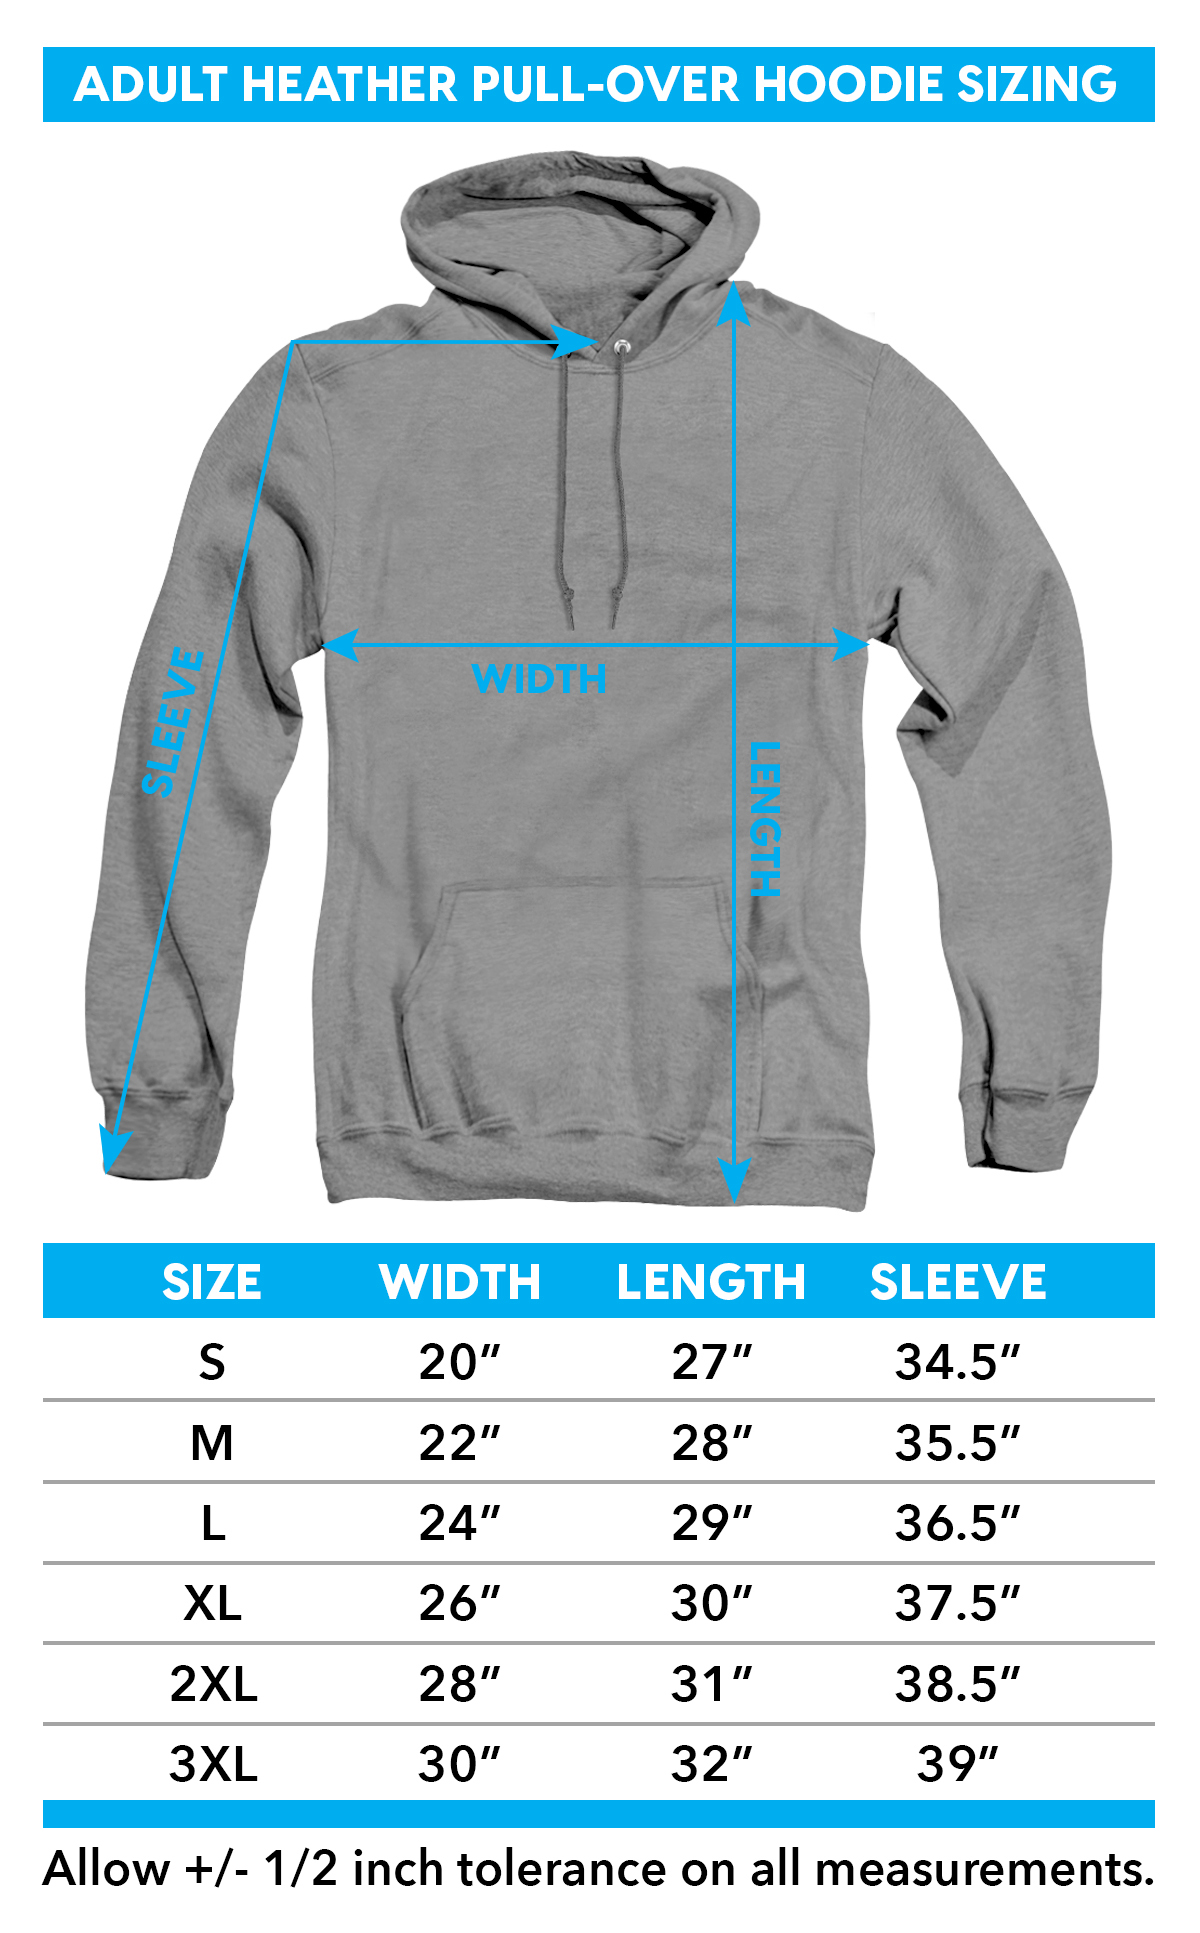 Sizing chart for Pet Sematary Heather Hoodie - TRV-PAR295-AHH